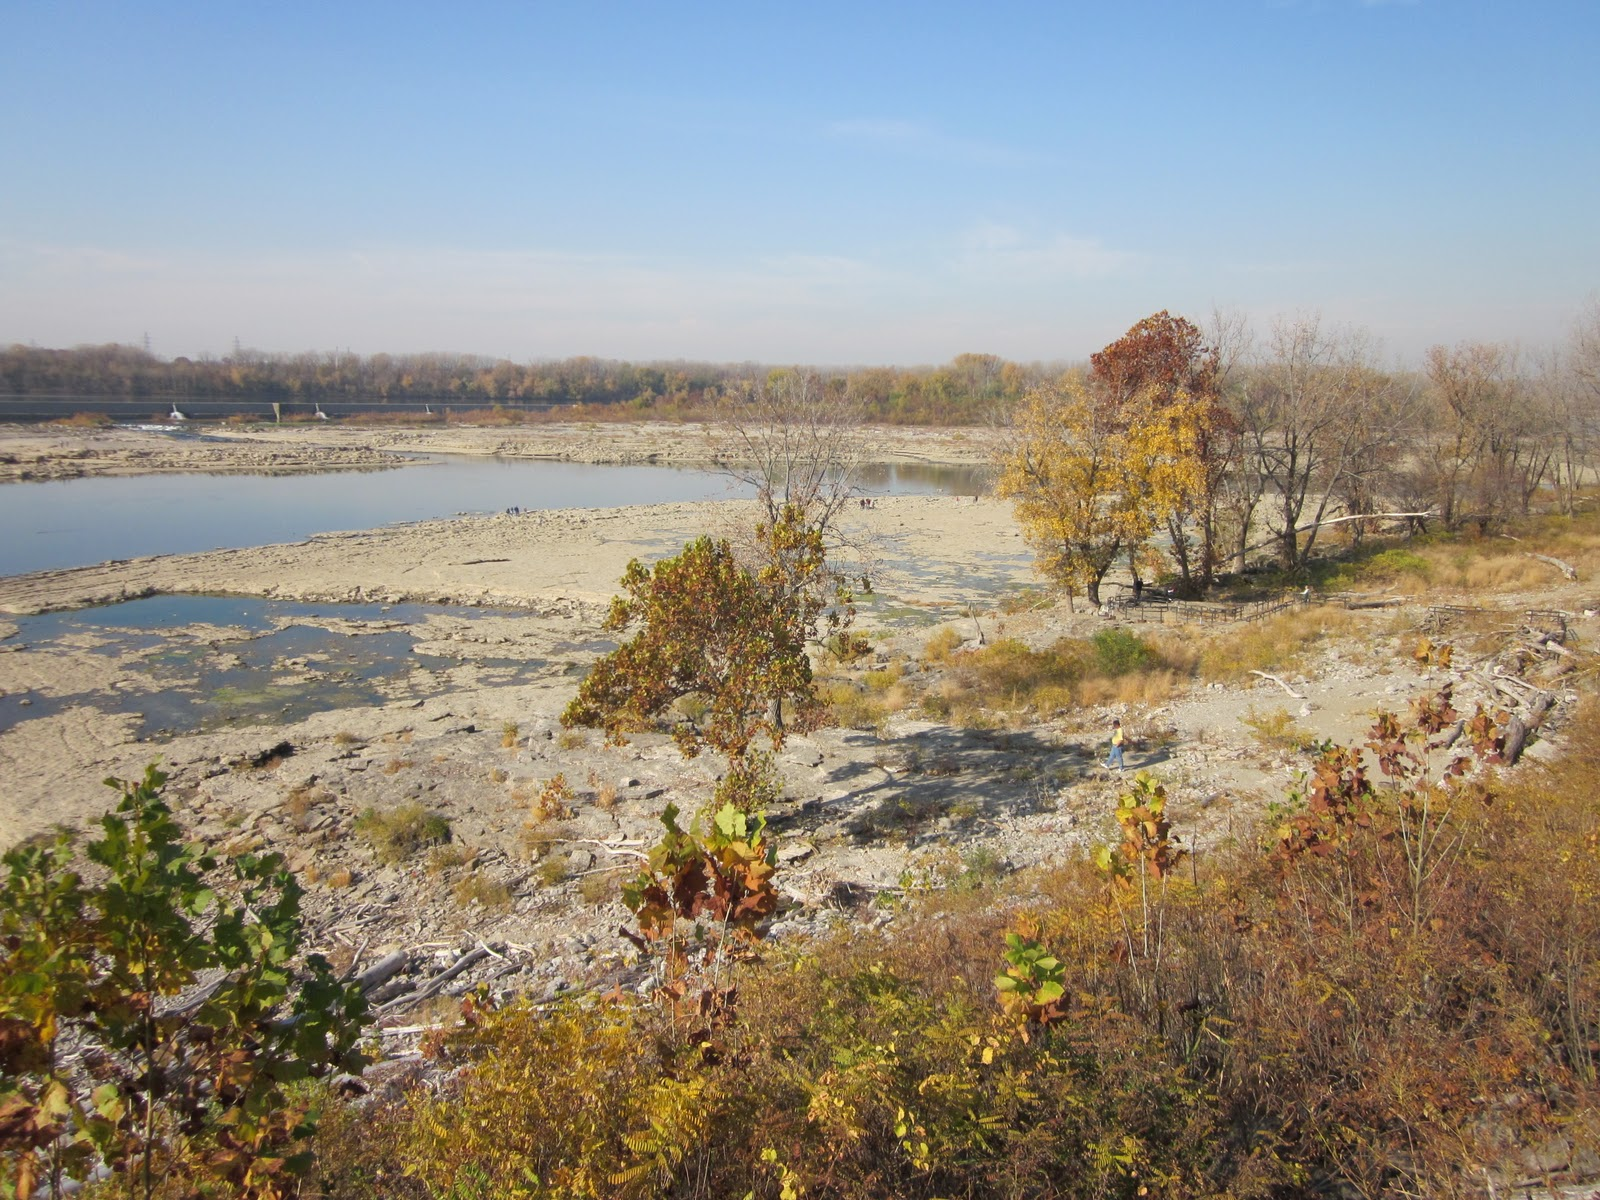 Falls of the Ohio State Park, Louisville, Kentucky, used to be an important crossing place over the wide Ohio River. Buffalo traces from the Midwest crossed here leading south into the Bluegrass and Pennyroyal Plain of Kentucky. This is the site from which Charles W. Short collected the now extinct Orbexilum stipulatum (Source:  http://www.arrowssentforth.com/2011/03/falls-of-ohio-state-park.html).